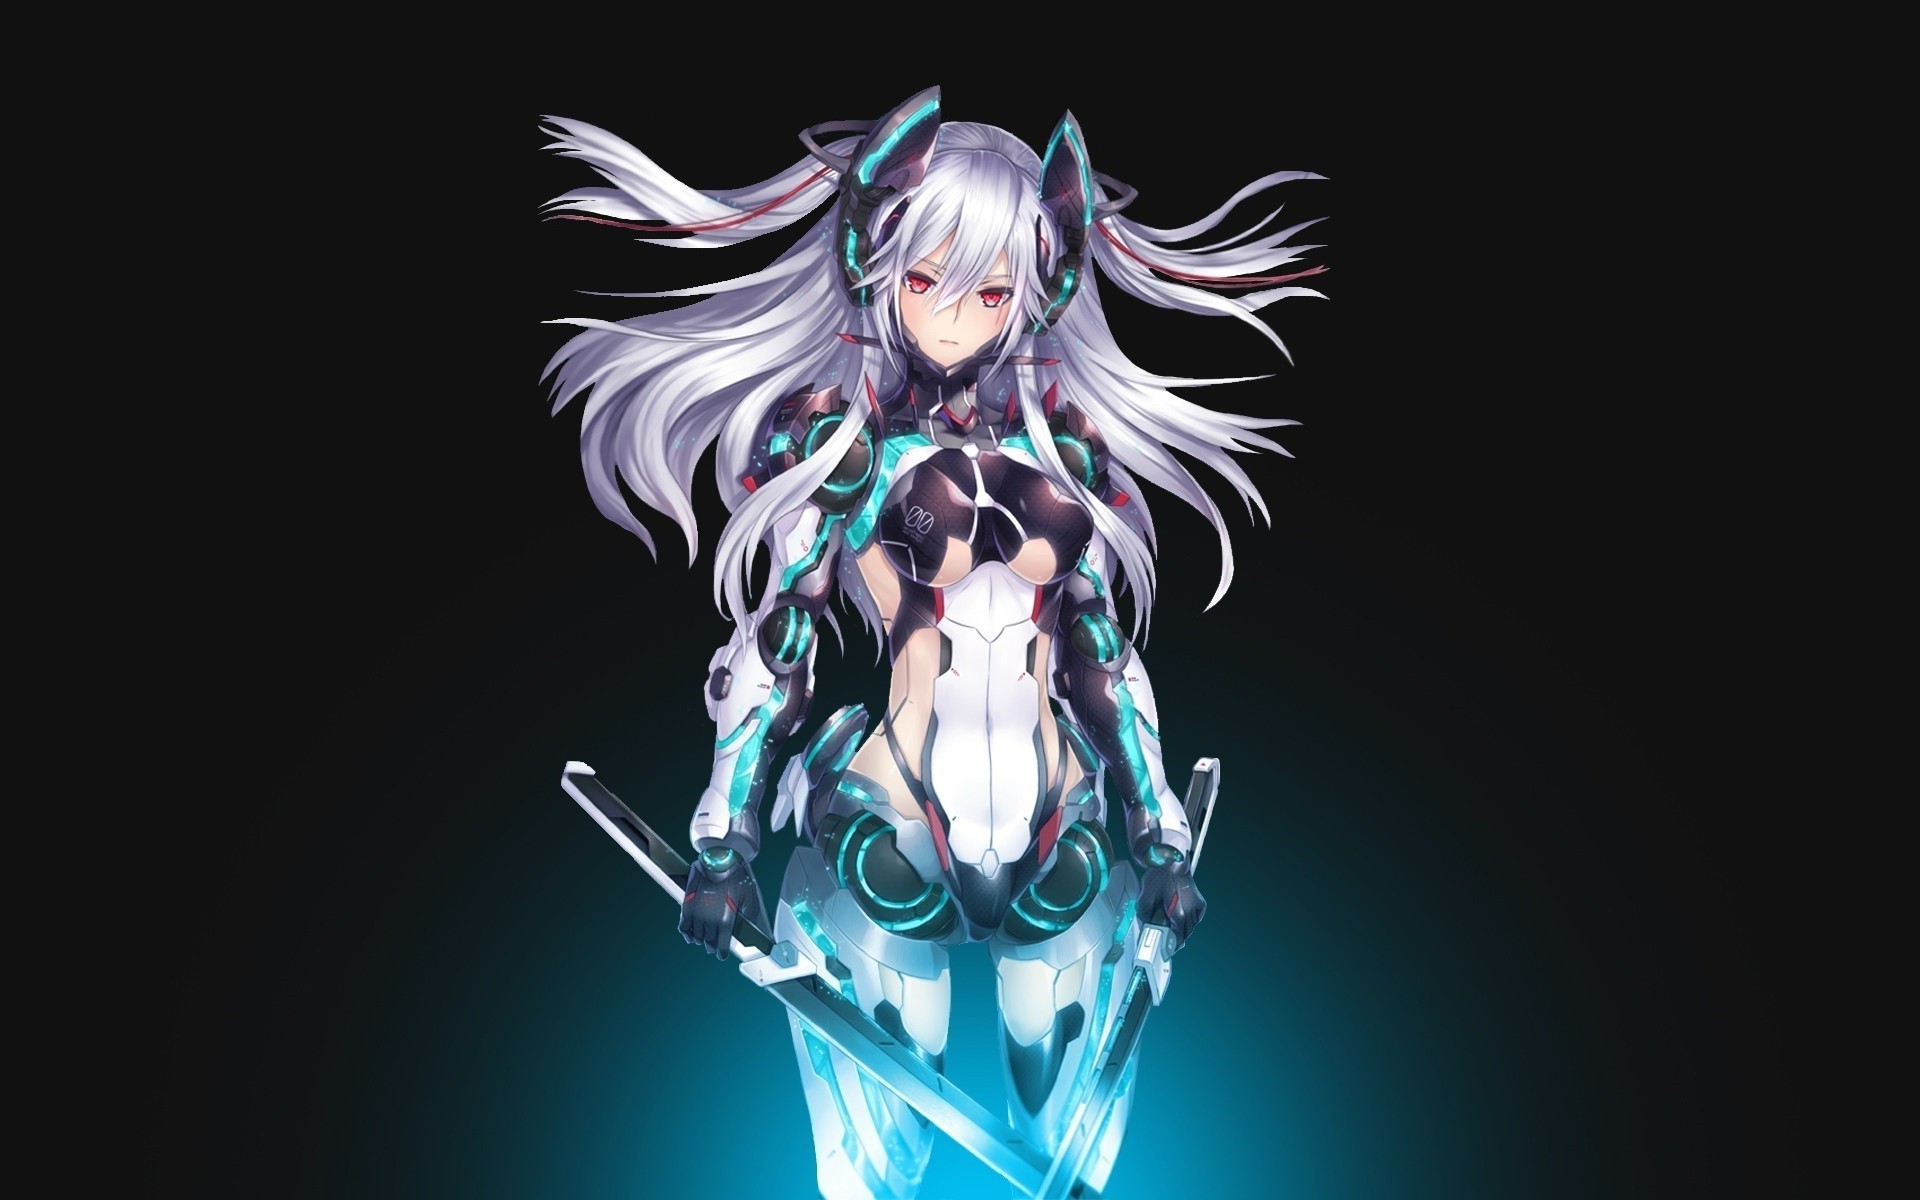 mecha Girls, Anime Girls, Silver Hair, Sword, Red Eyes Wallpapers HD /  Desktop and Mobile Backgrounds